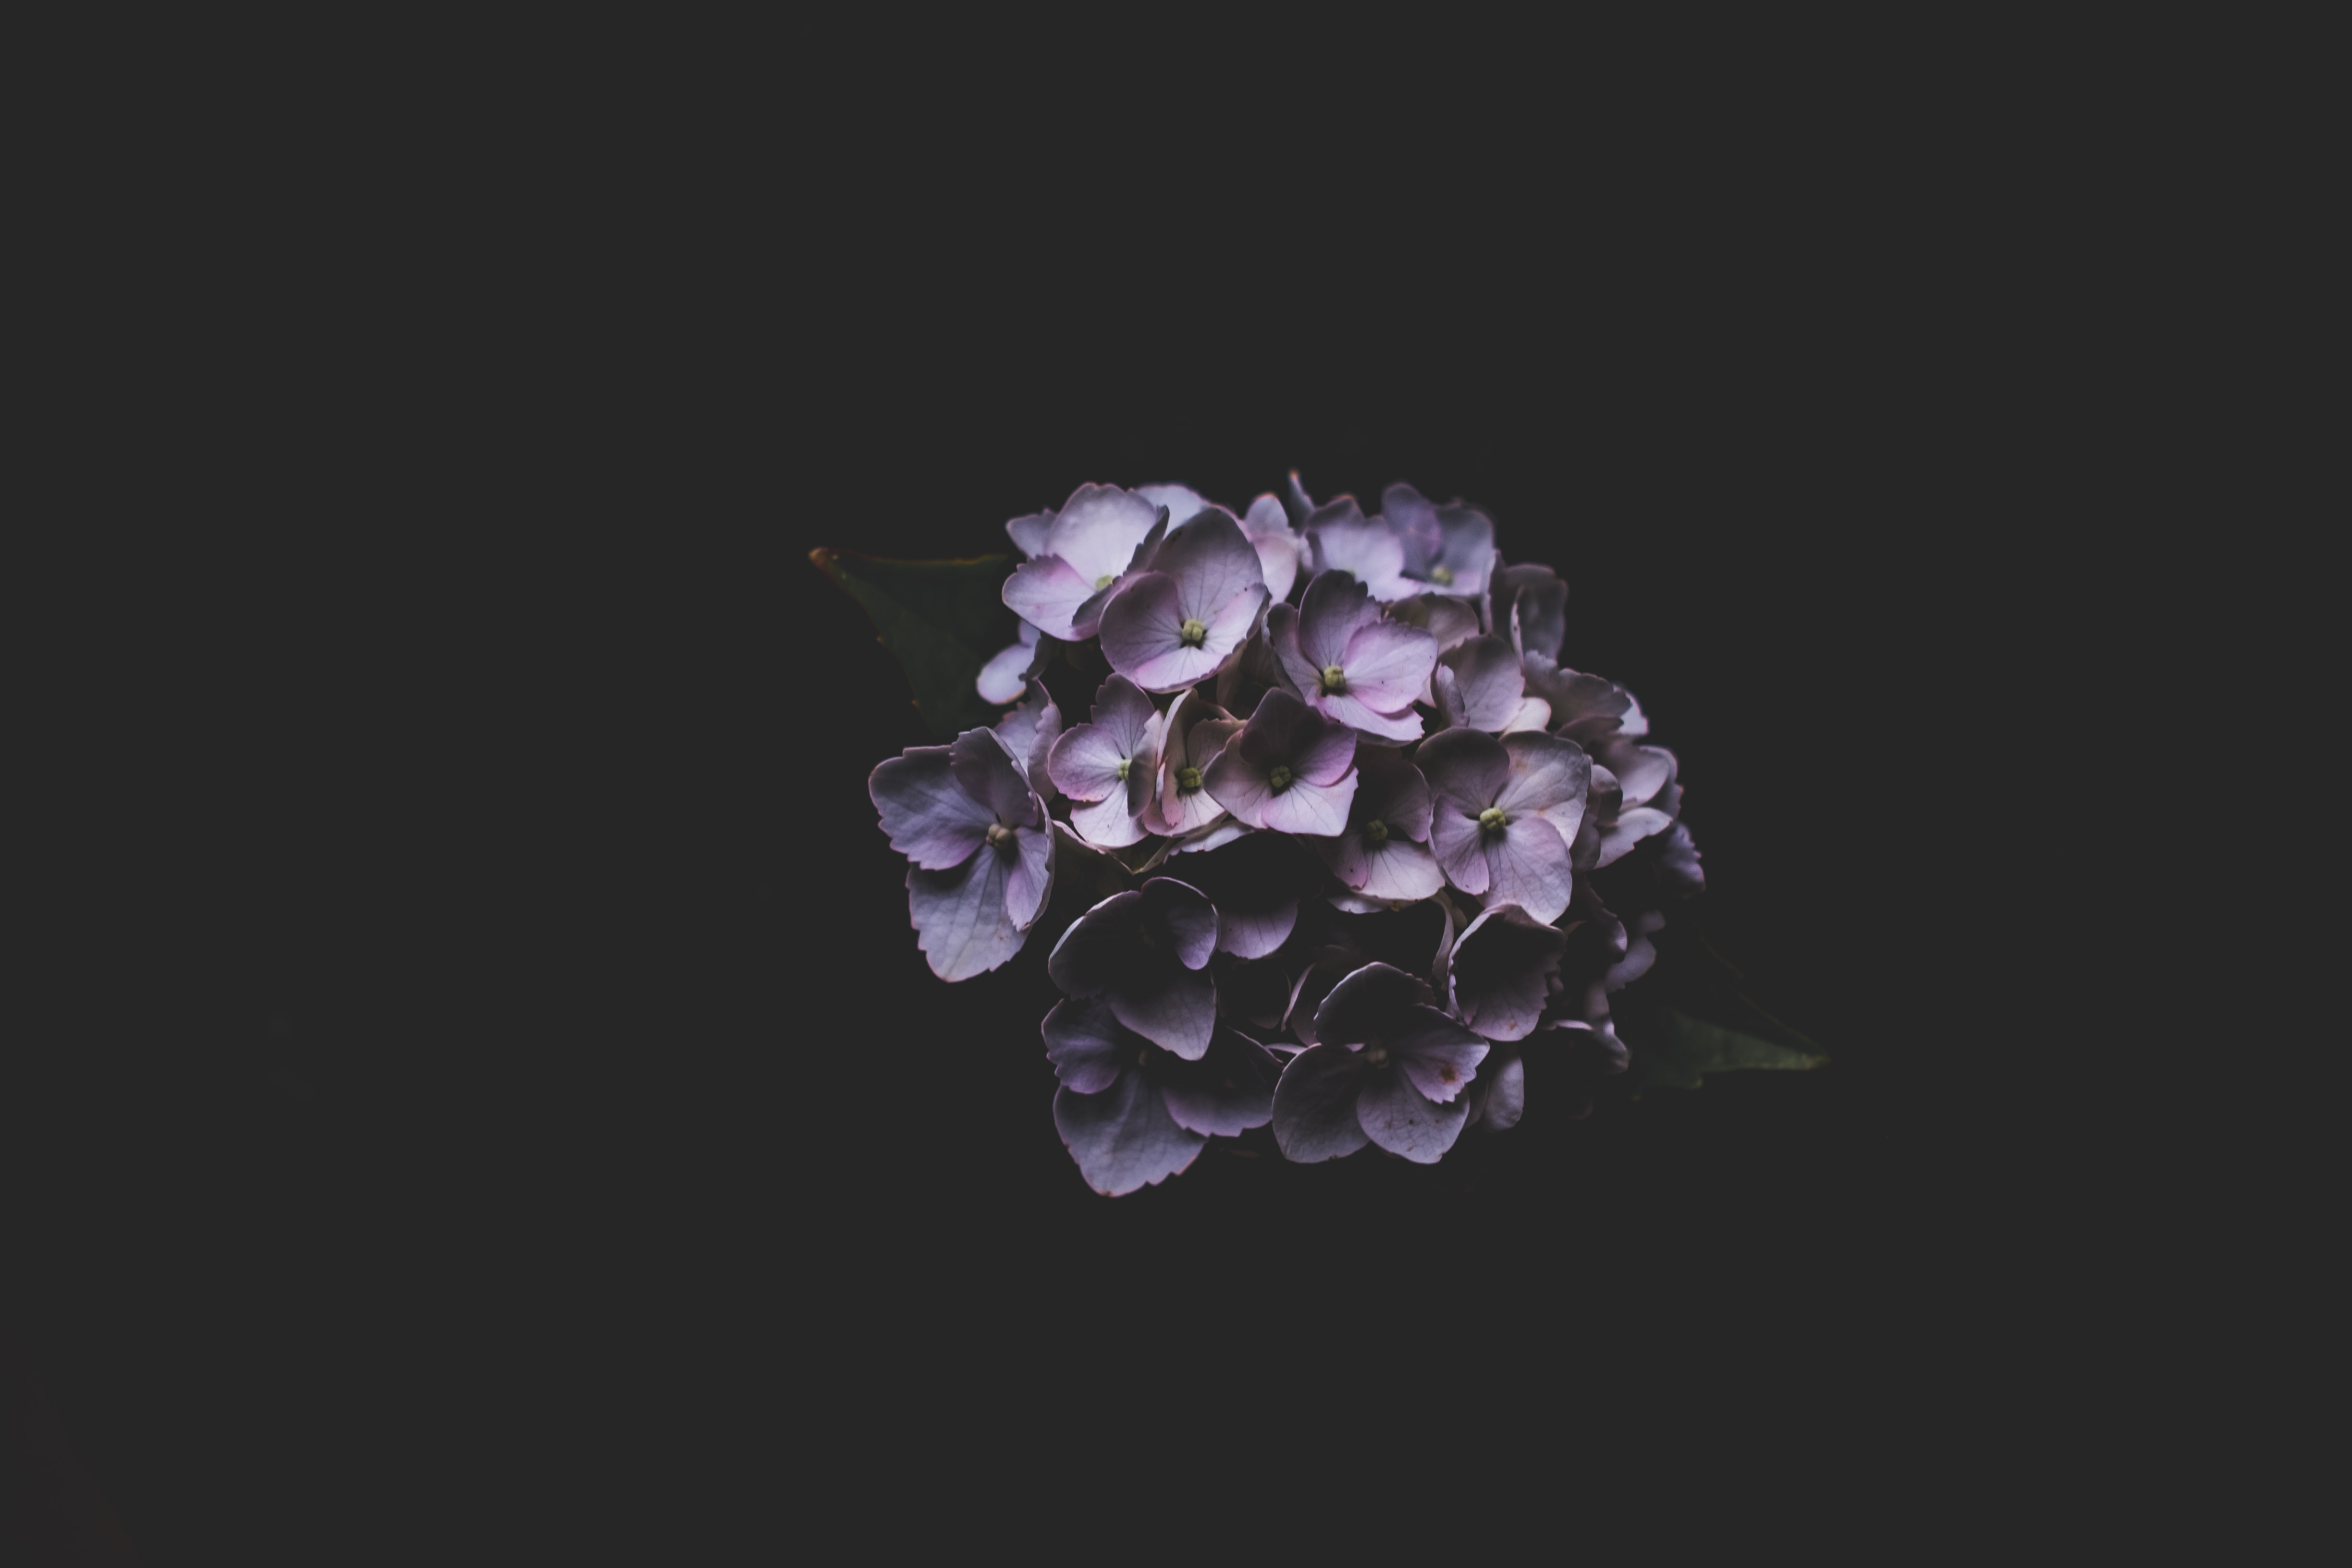 A cluster of purple hydrangea flowers against a black background